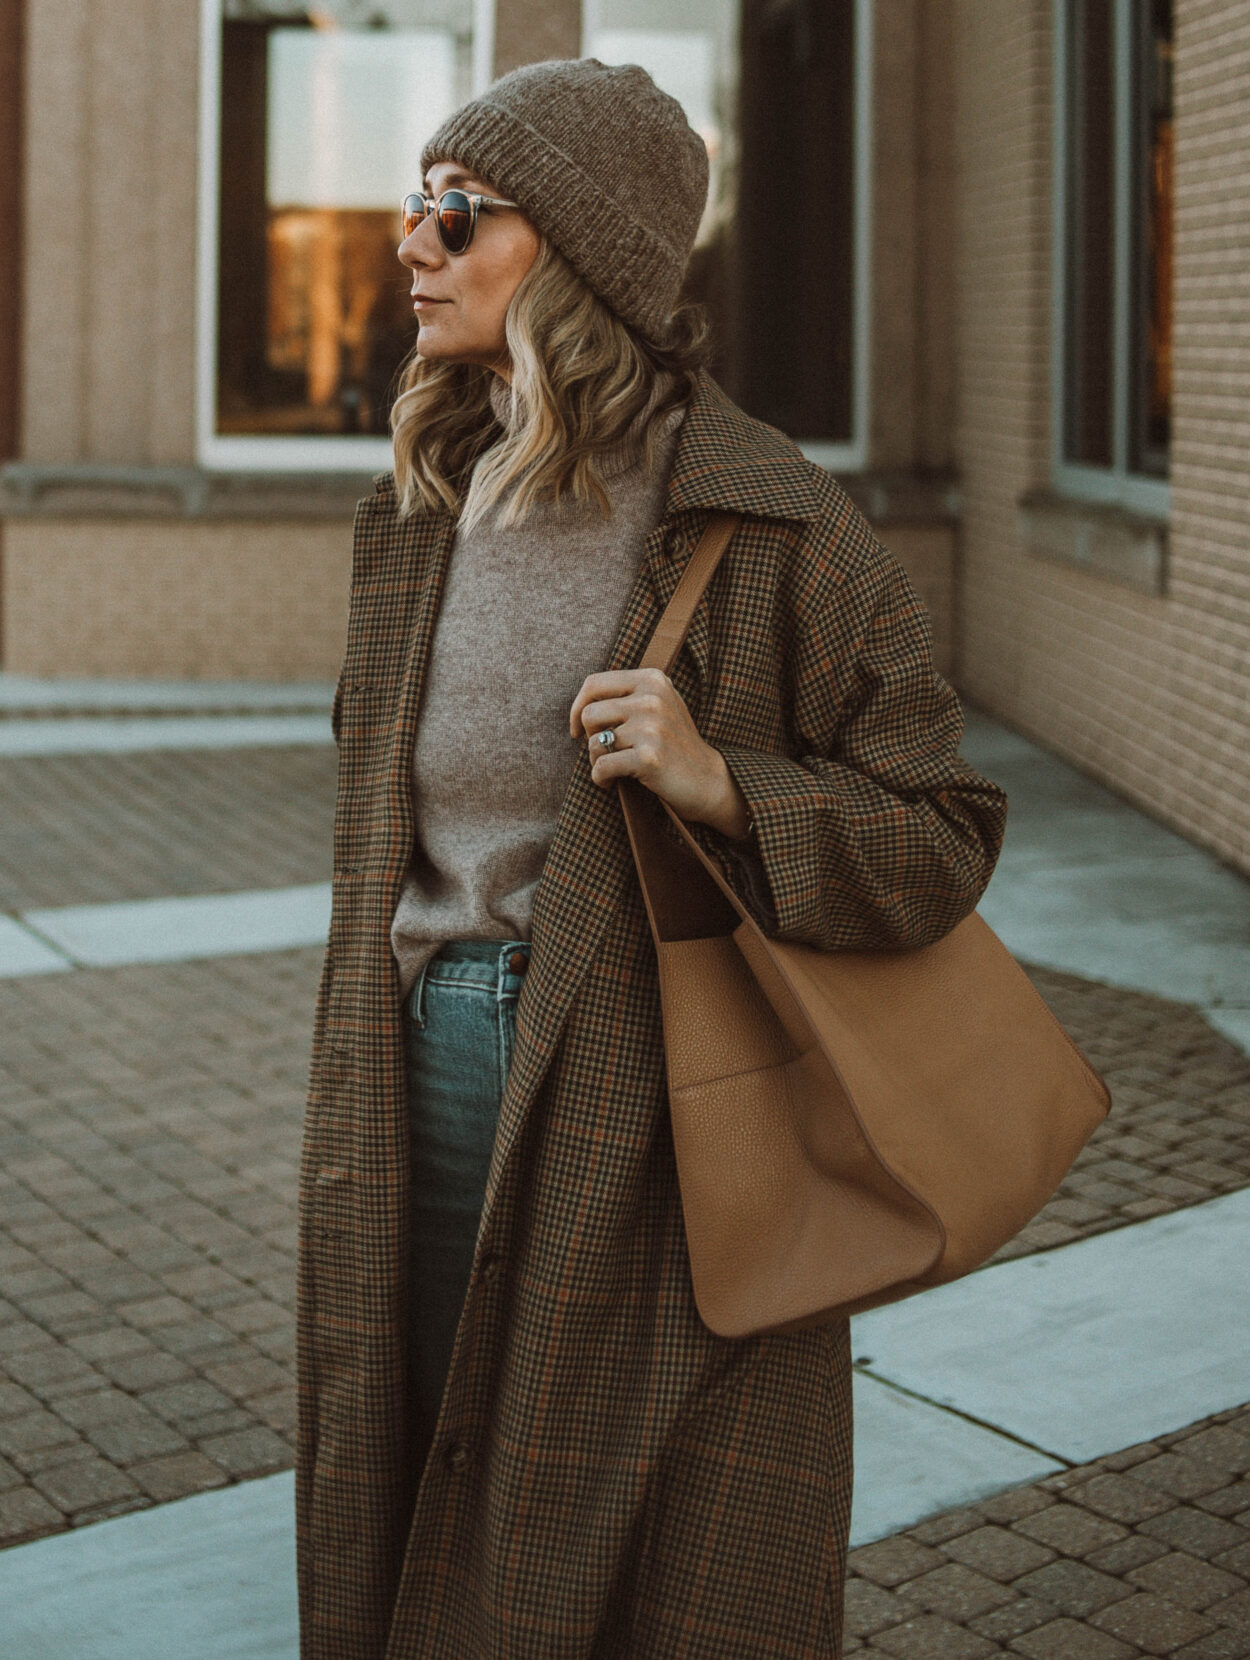 cozy, stay at home outfits madewell perfect vintage jeans, toteme coat, toteme sweater, beige turtleneck sweater, white sneakers, plaid coat, cuyana hobo bag, brown toque